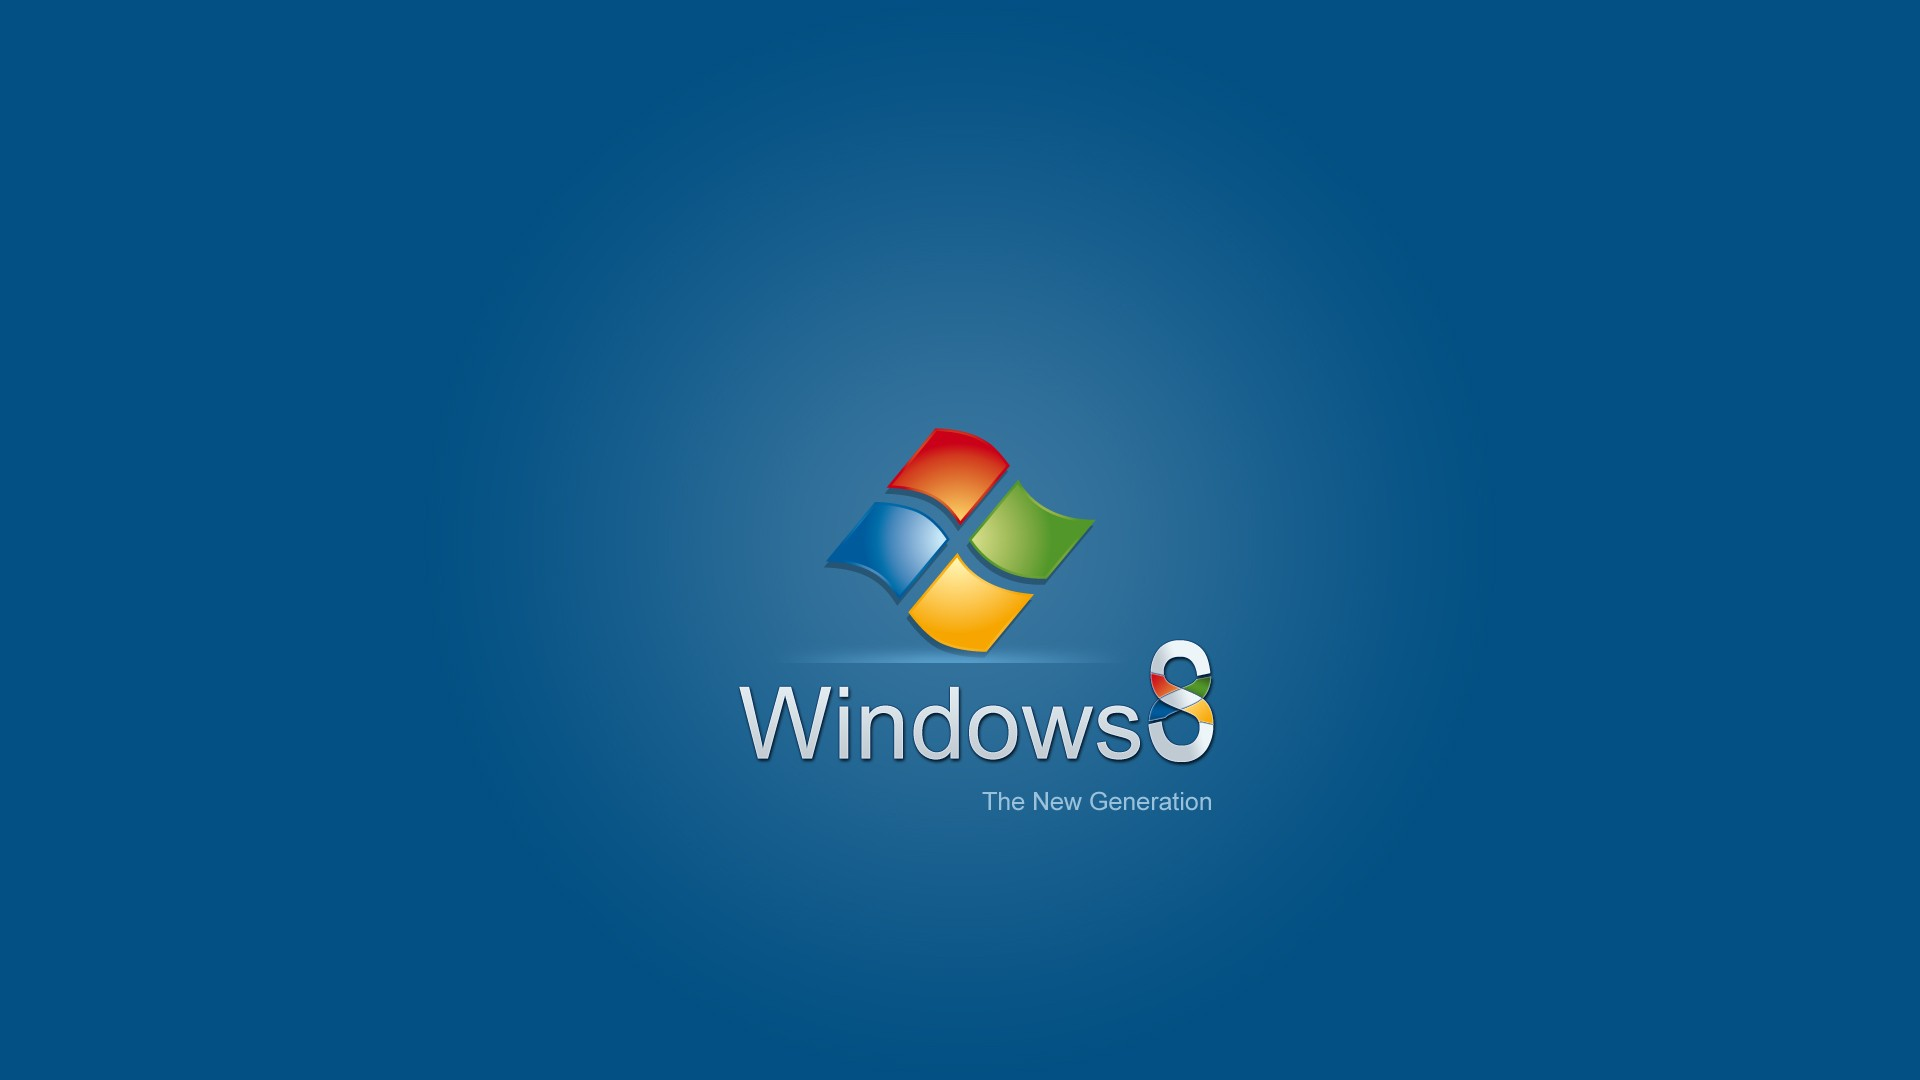 Super Cool Windows 8 HD Wallpaper